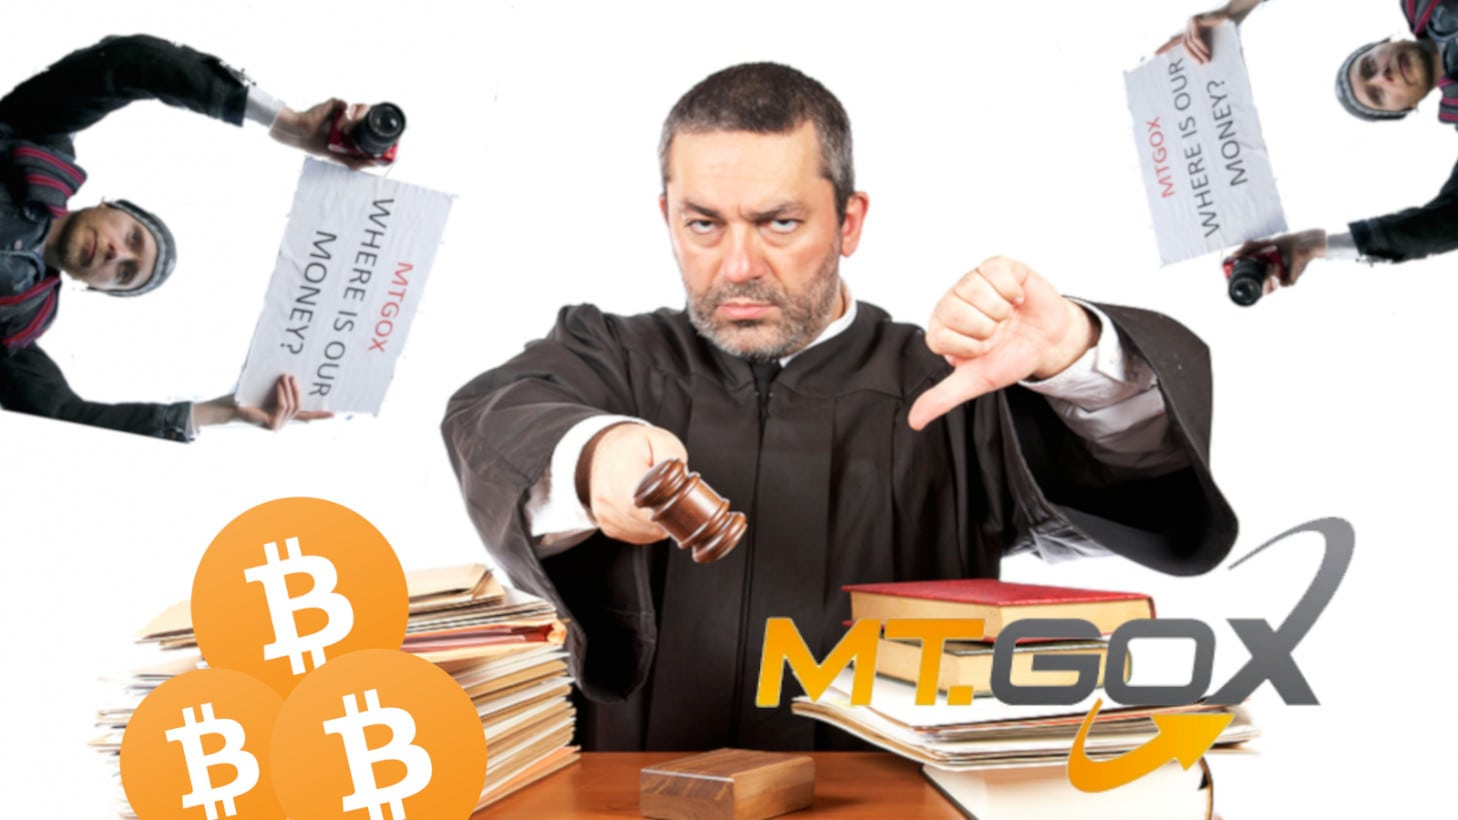 mtgox cryptocurrency blockchain bitcoin - Mt. Gox's Victims Will Receive BTC Worth Of $1 Billion - The Deadline For Filing The Necessary Documents Is October 22, 2018